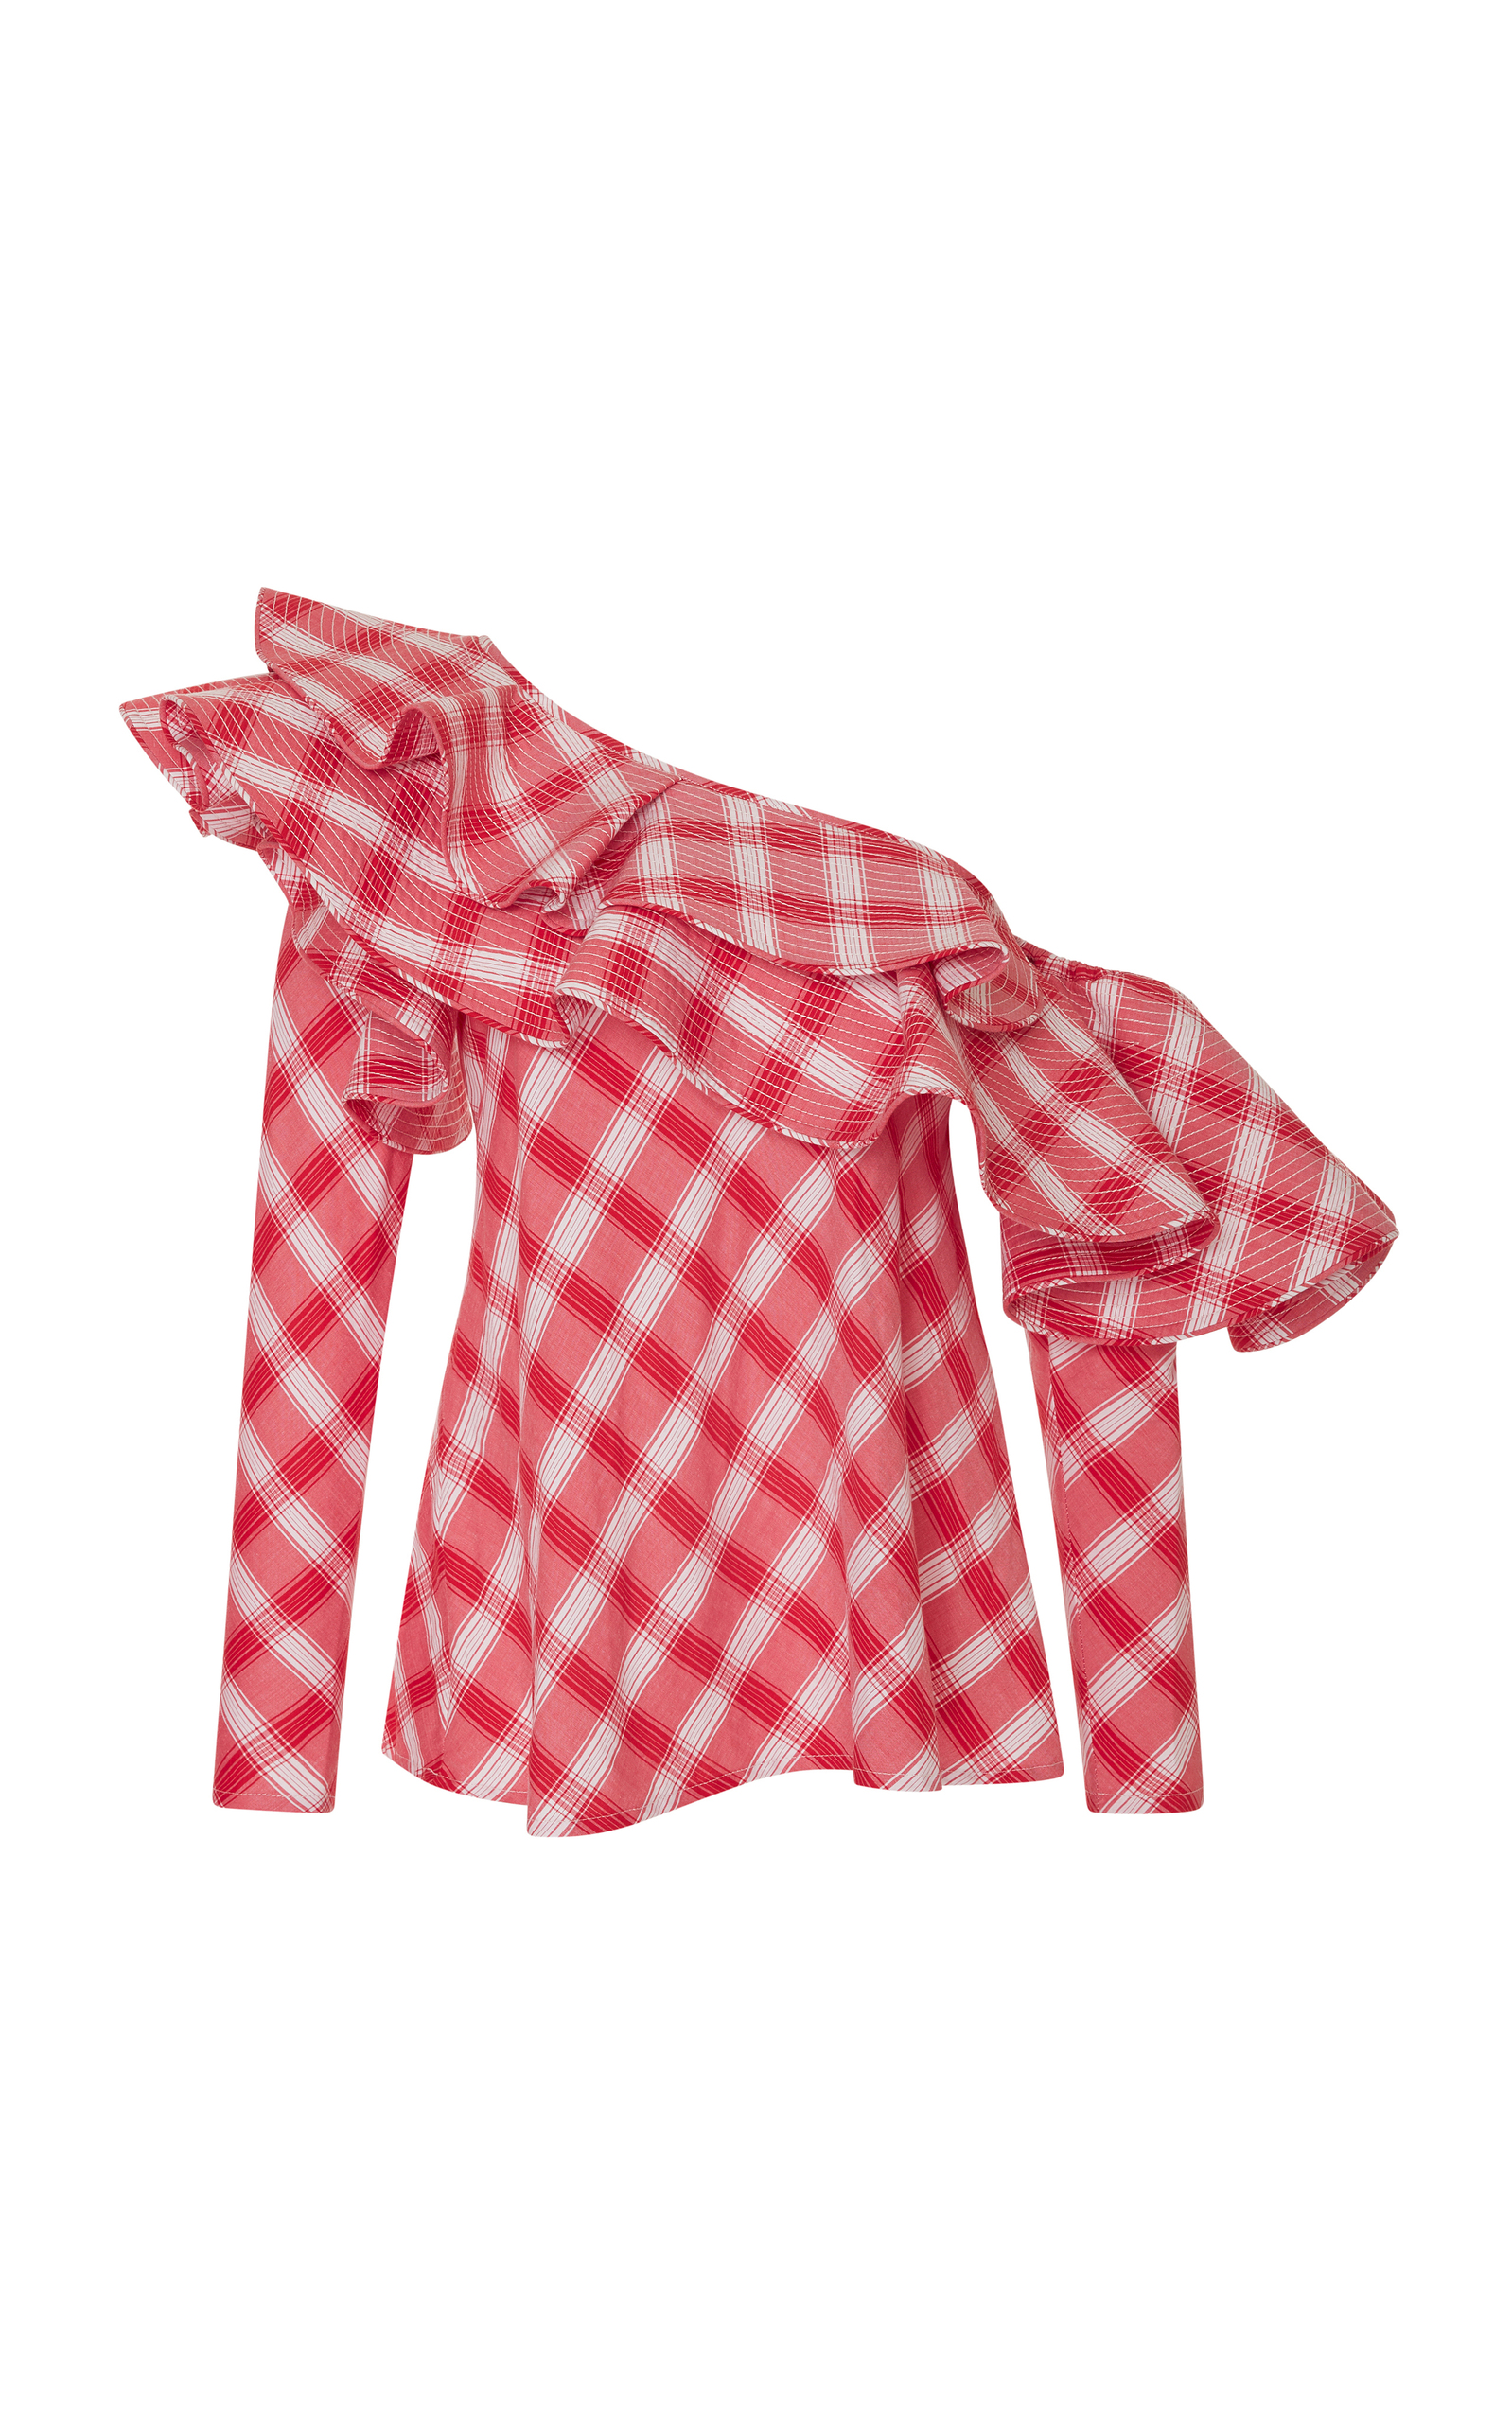 JOHANNA ORTIZ Red/White Mangas Coloradas One Shoulder Ruffled Checked Top